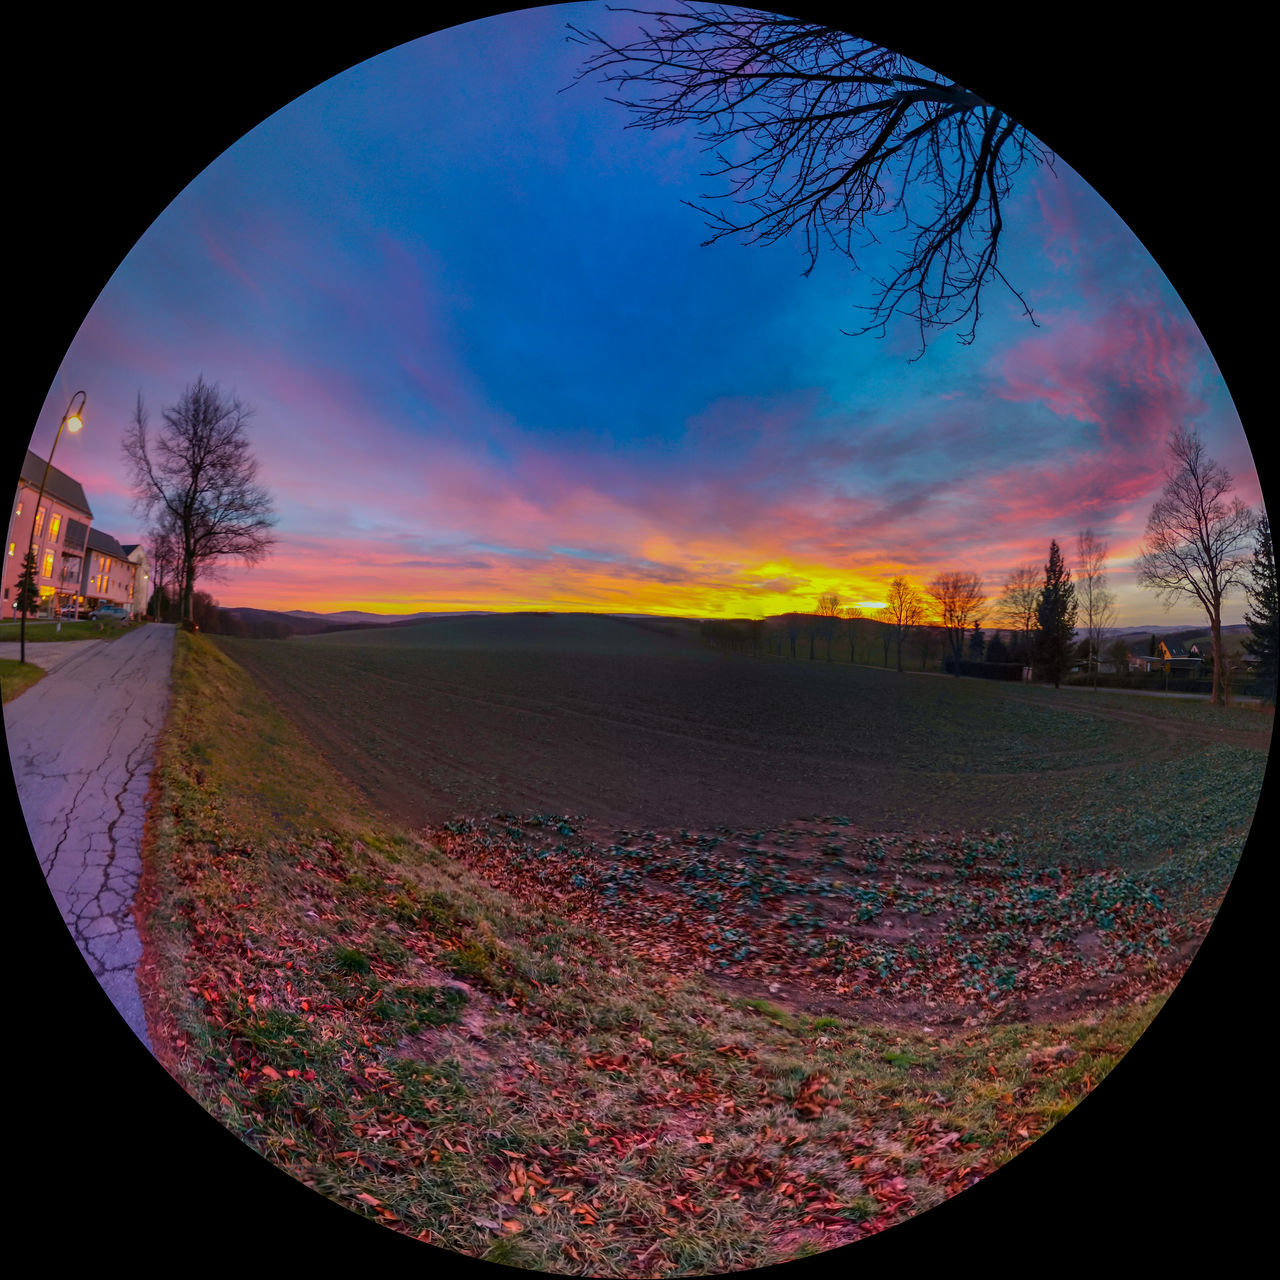 tree, circle, bare tree, sky, tranquility, landscape, no people, tranquil scene, nature, sunset, beauty in nature, scenics, fish-eye lens, autumn, outdoors, day, close-up